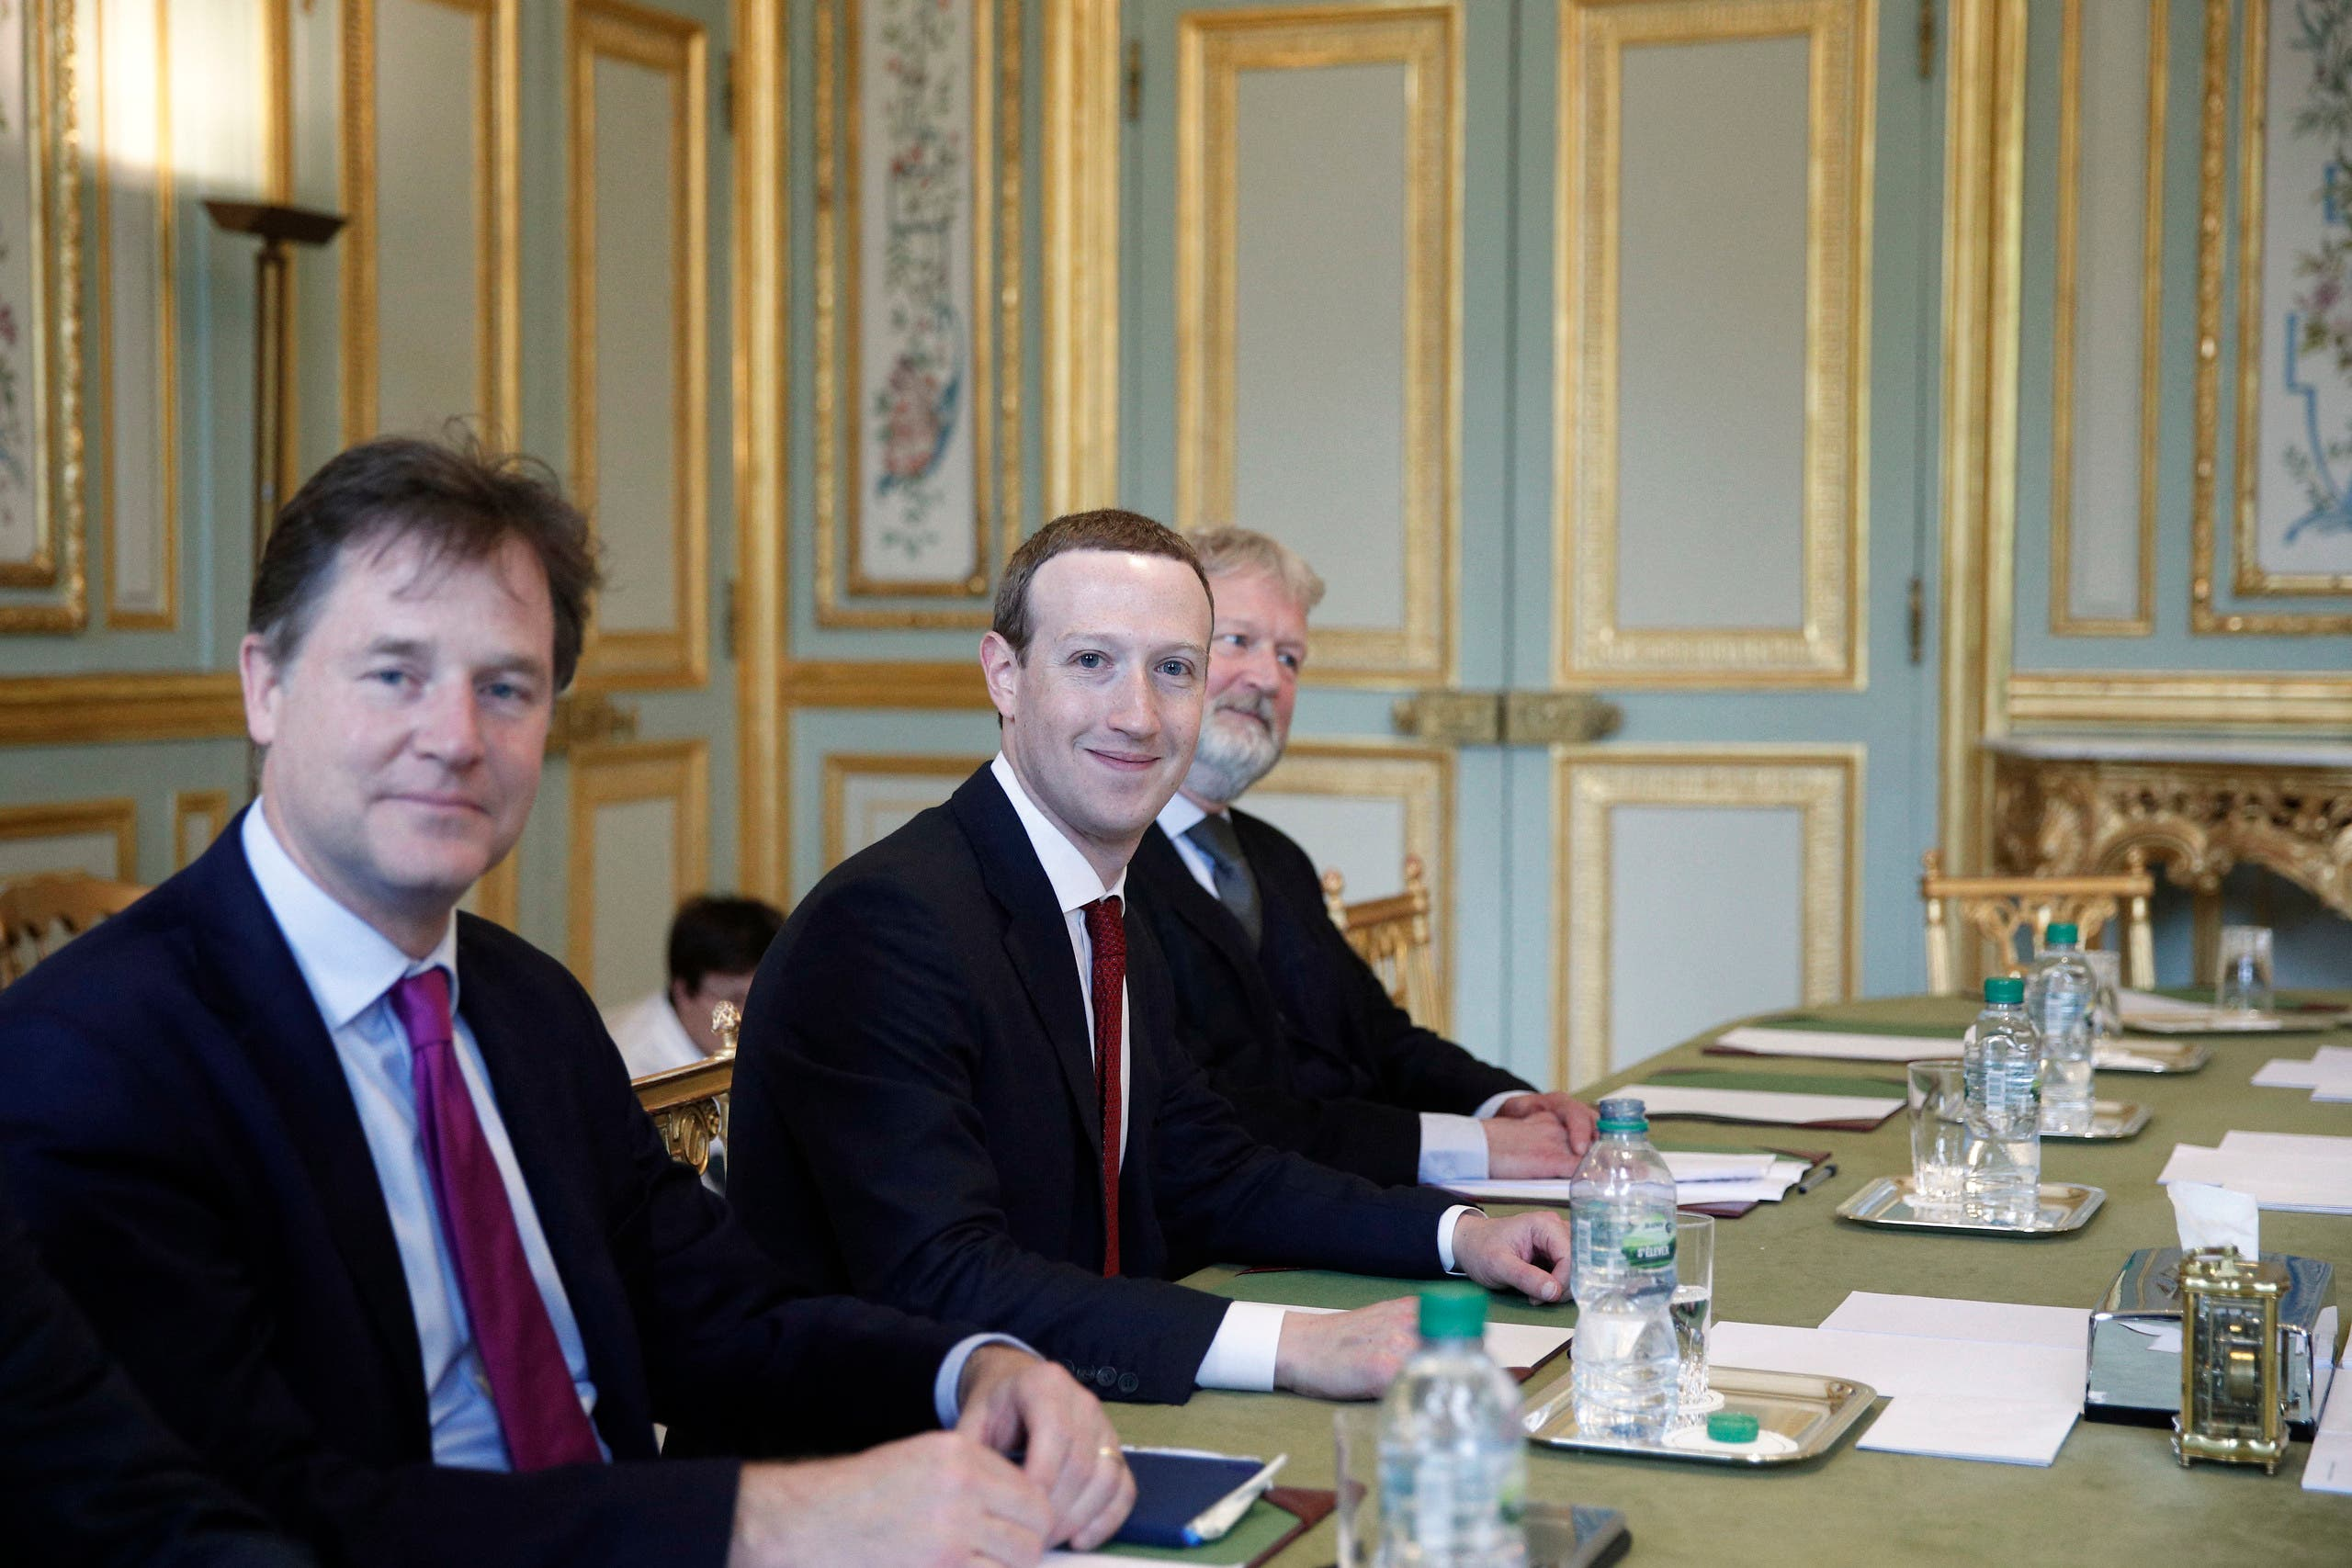 CEO and co-founder of Facebook Mark Zuckerberg poses next to Facebook head of global policy communications and former UK deputy prime minister Nick Clegg (L). (AP)